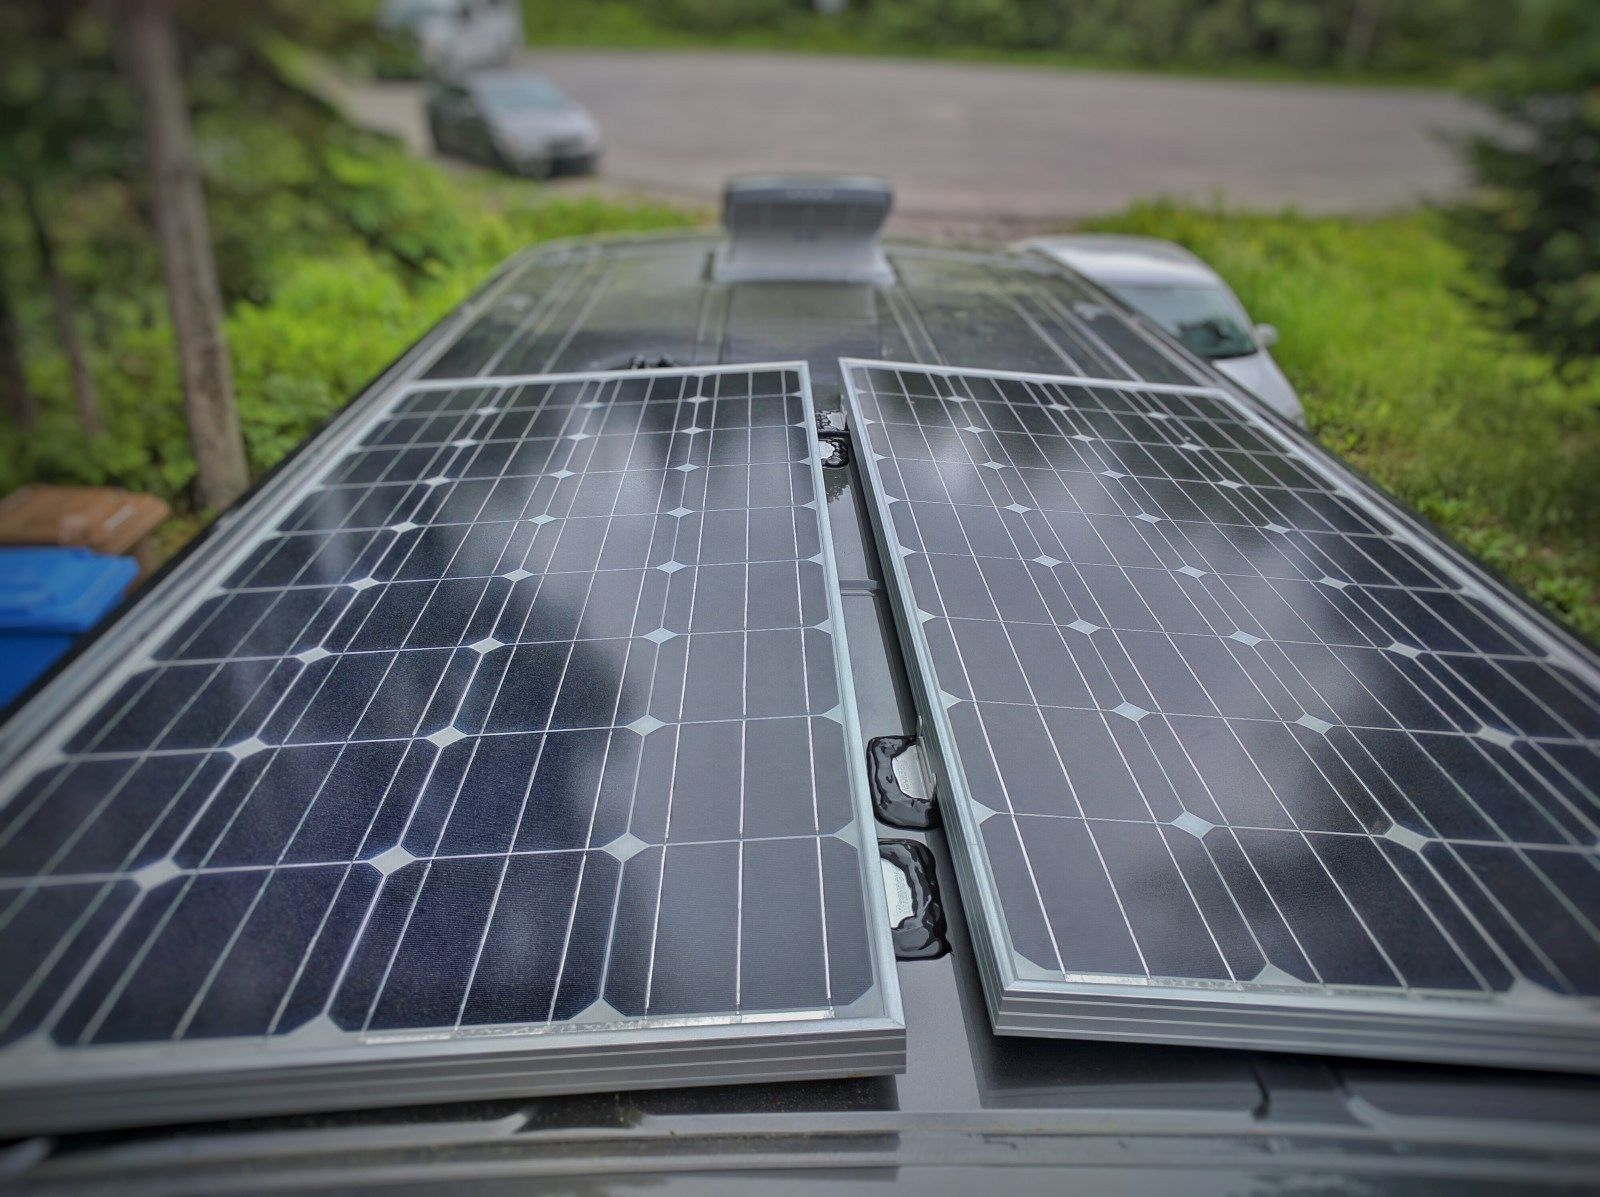 How To Install Solar Panels On A Camper Van Conversion With 3m Vhb Tape No Holes Faroutride Solar Panels Best Solar Panels Solar Energy Panels